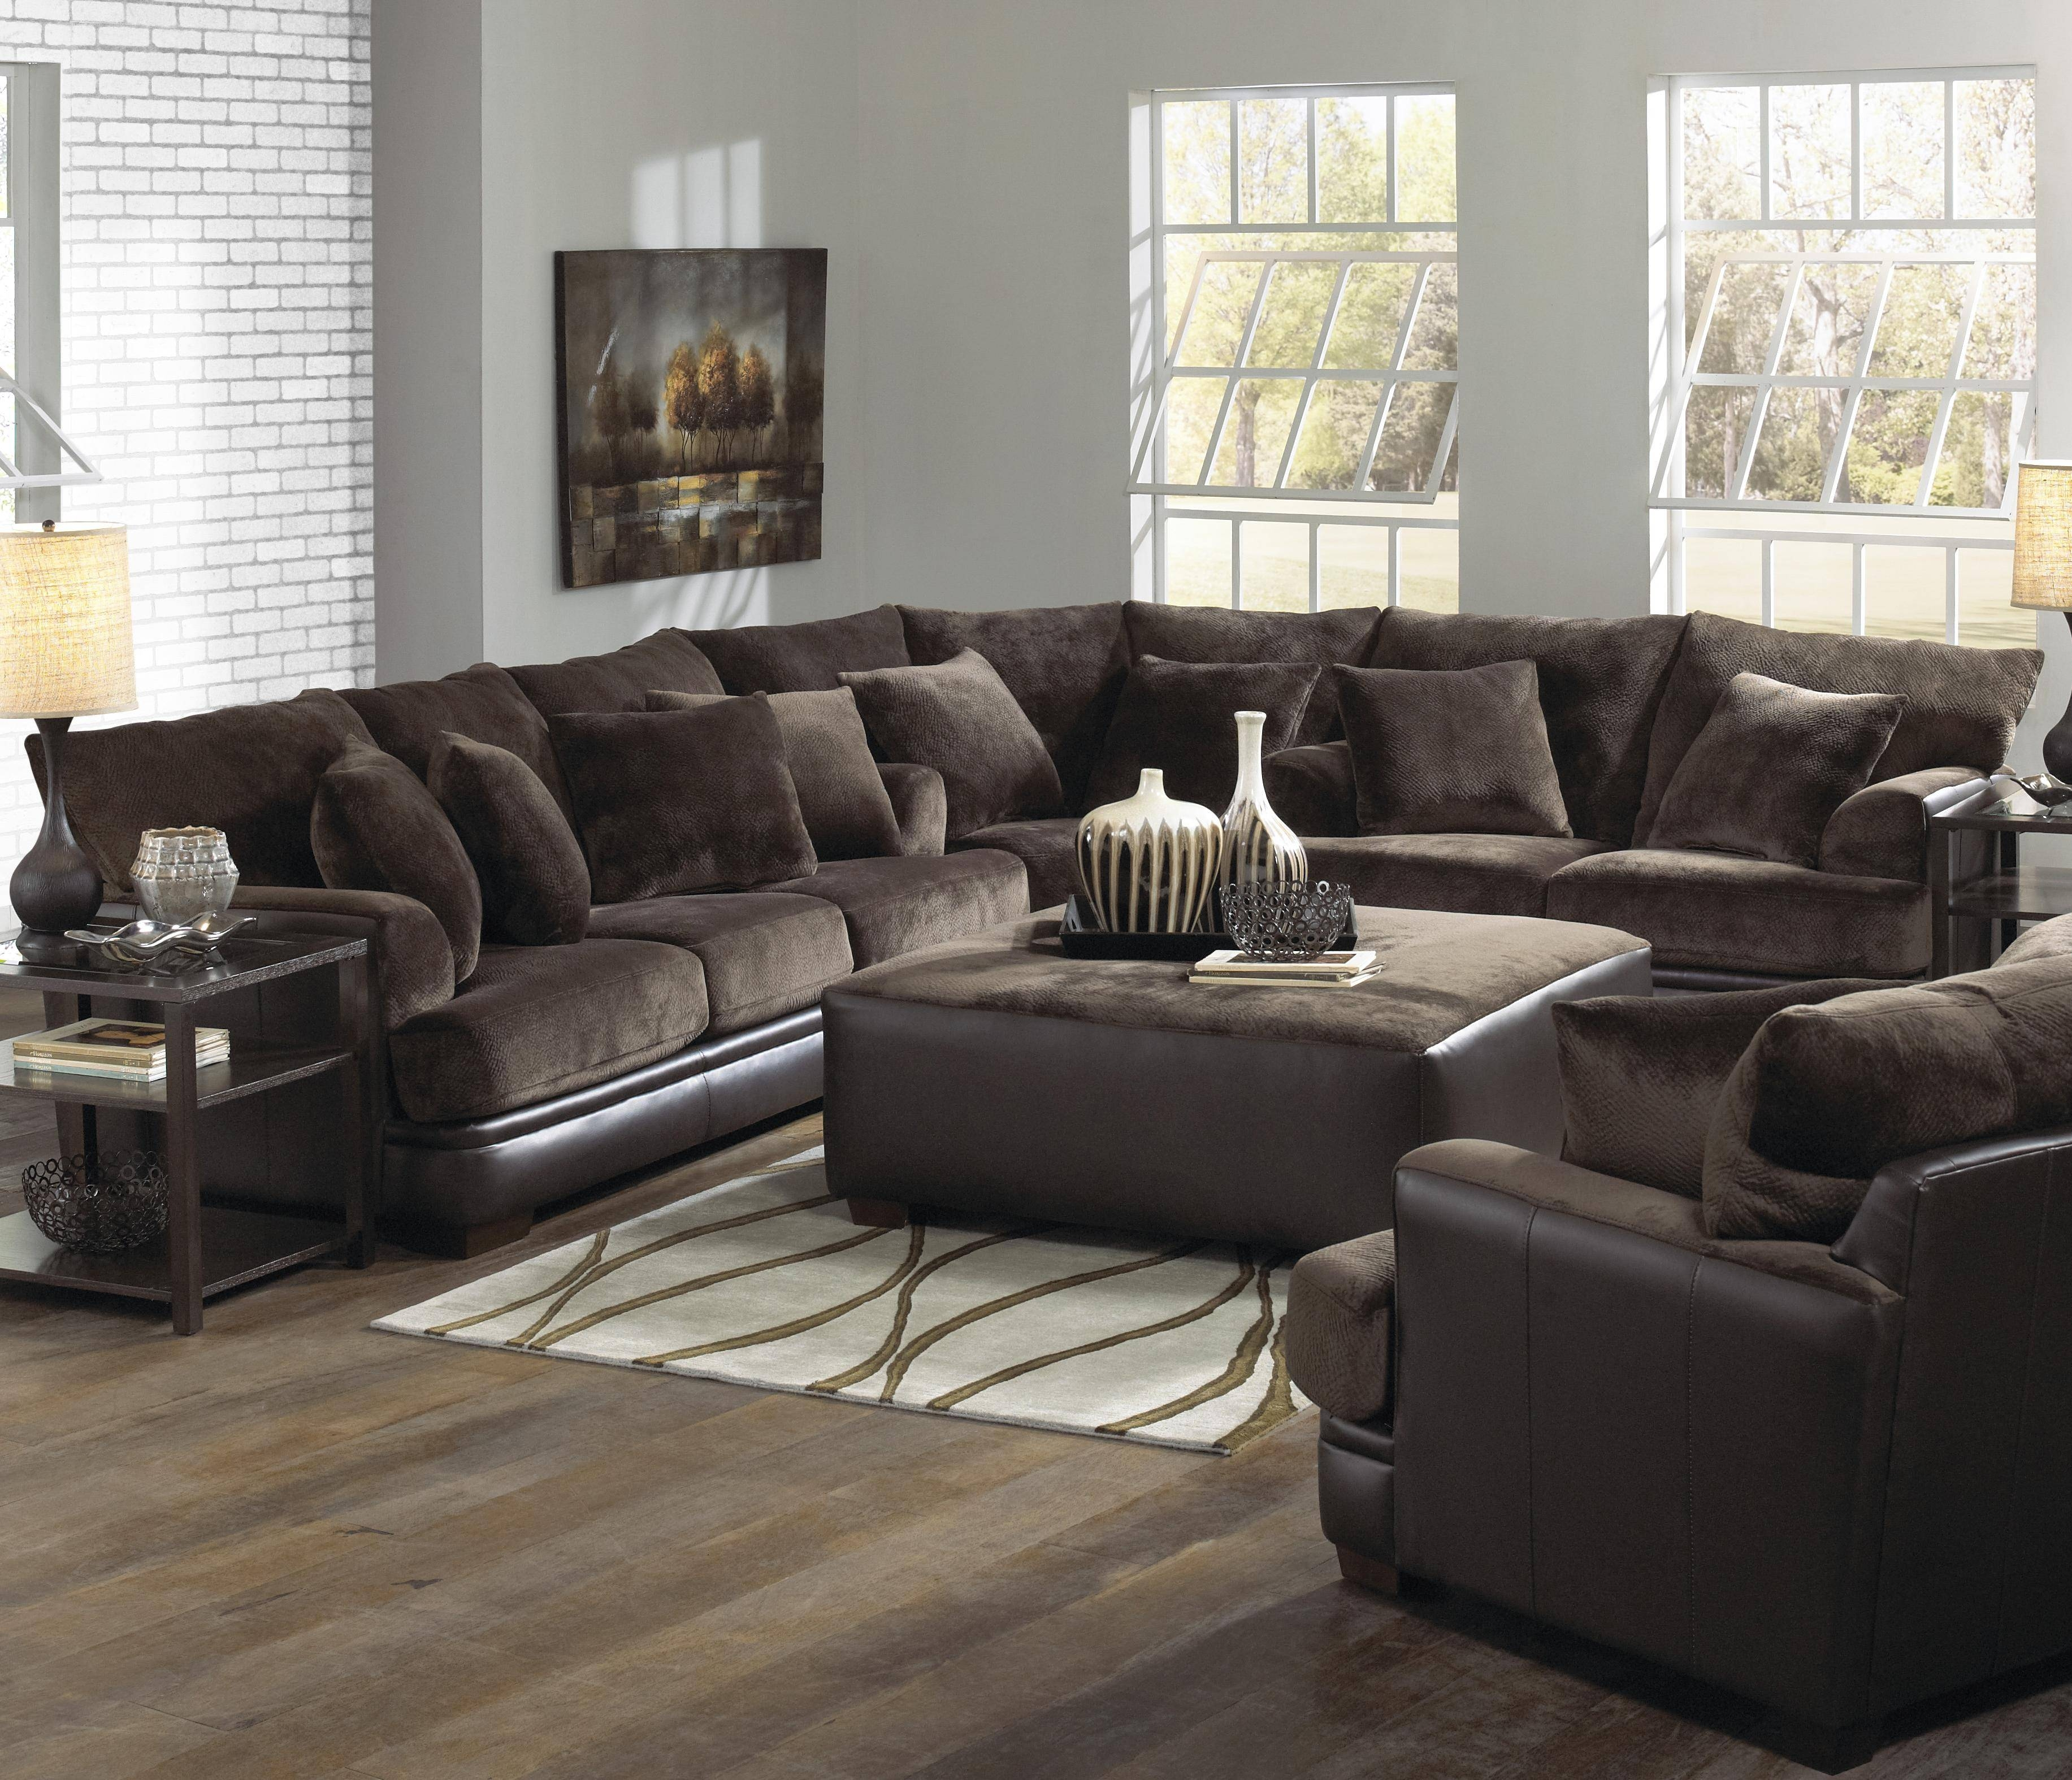 Furniture: Nice Extra Large Sectional Sofa For Large Living Room throughout Large Sofa Sectionals (Image 15 of 25)